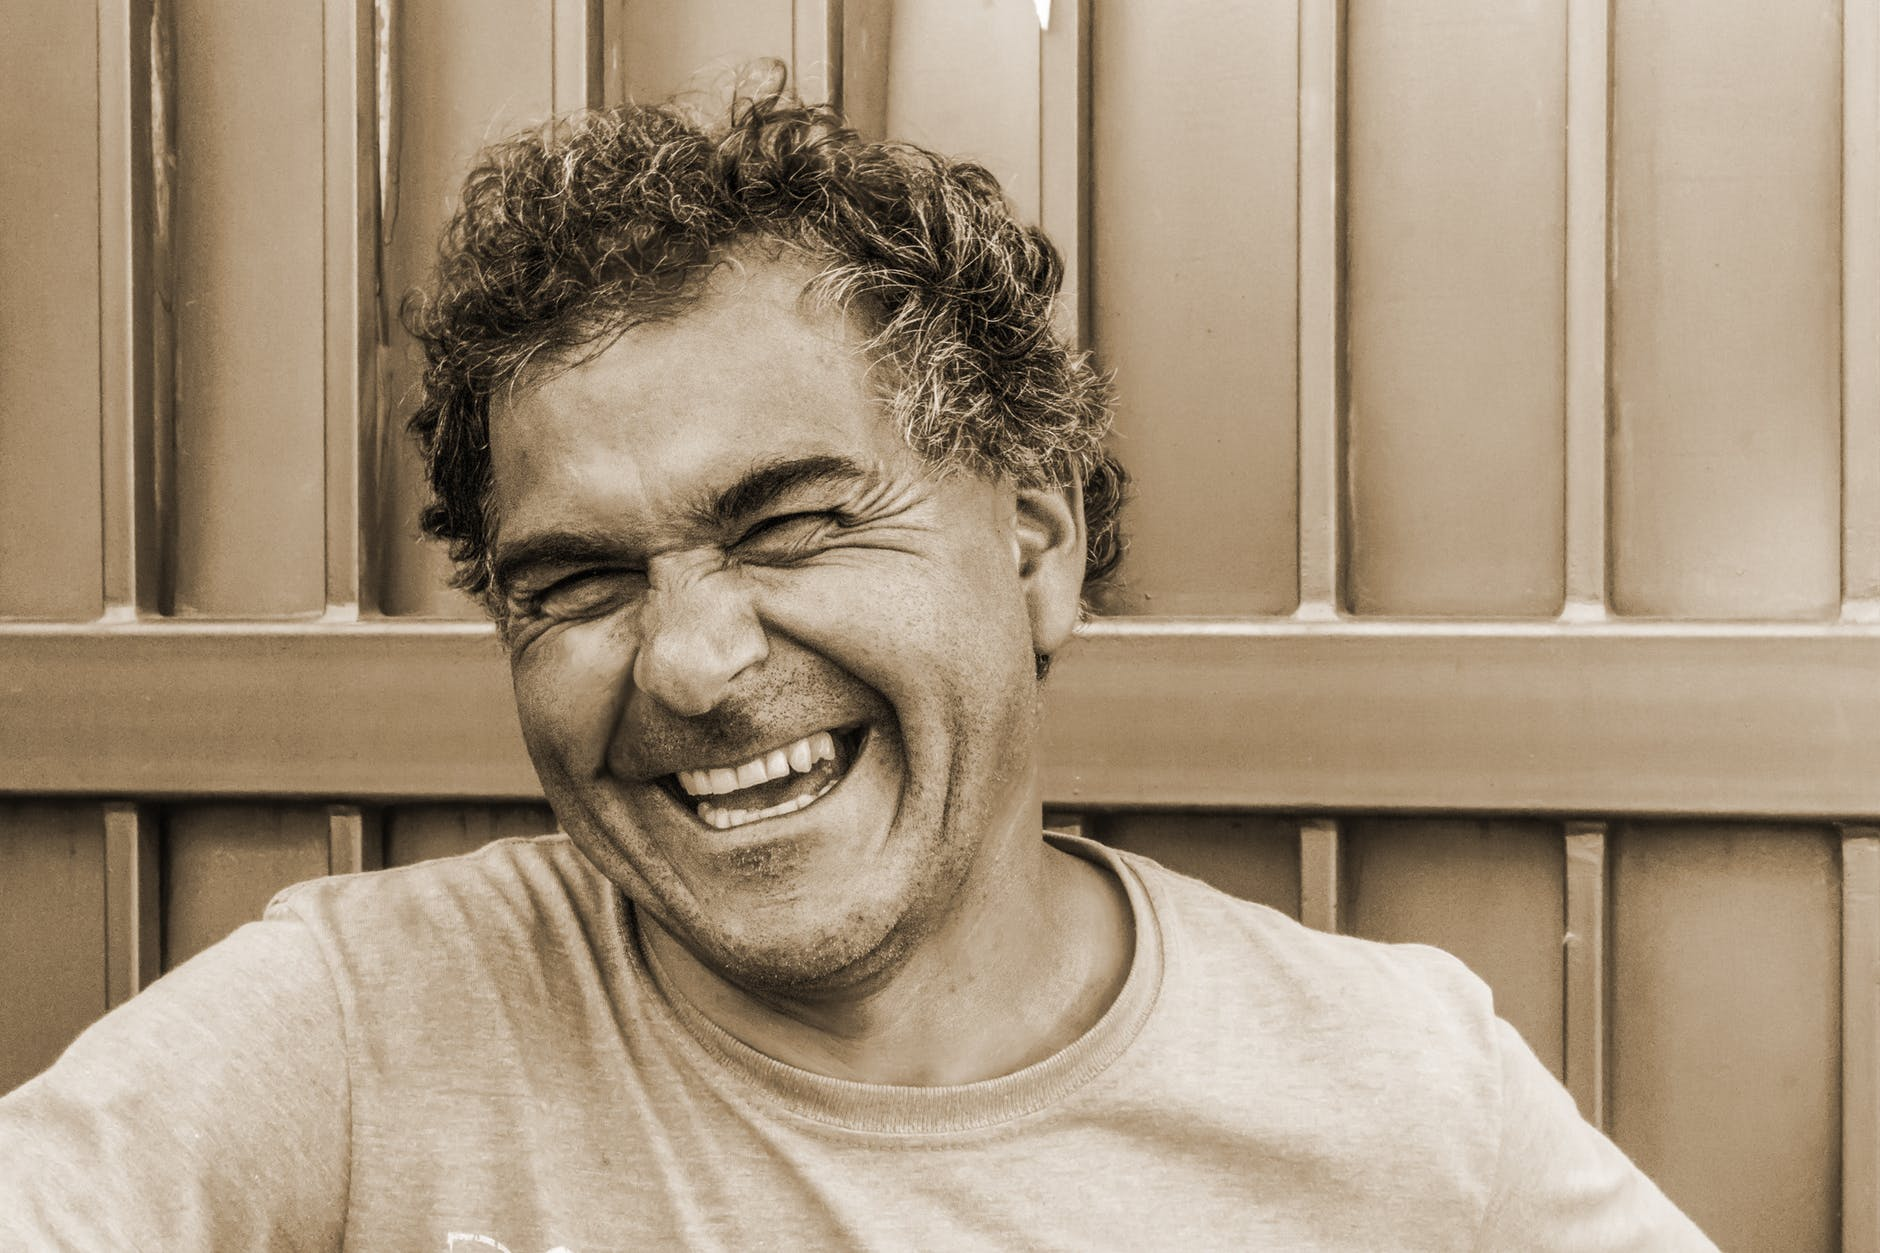 man laughing with sepia filter